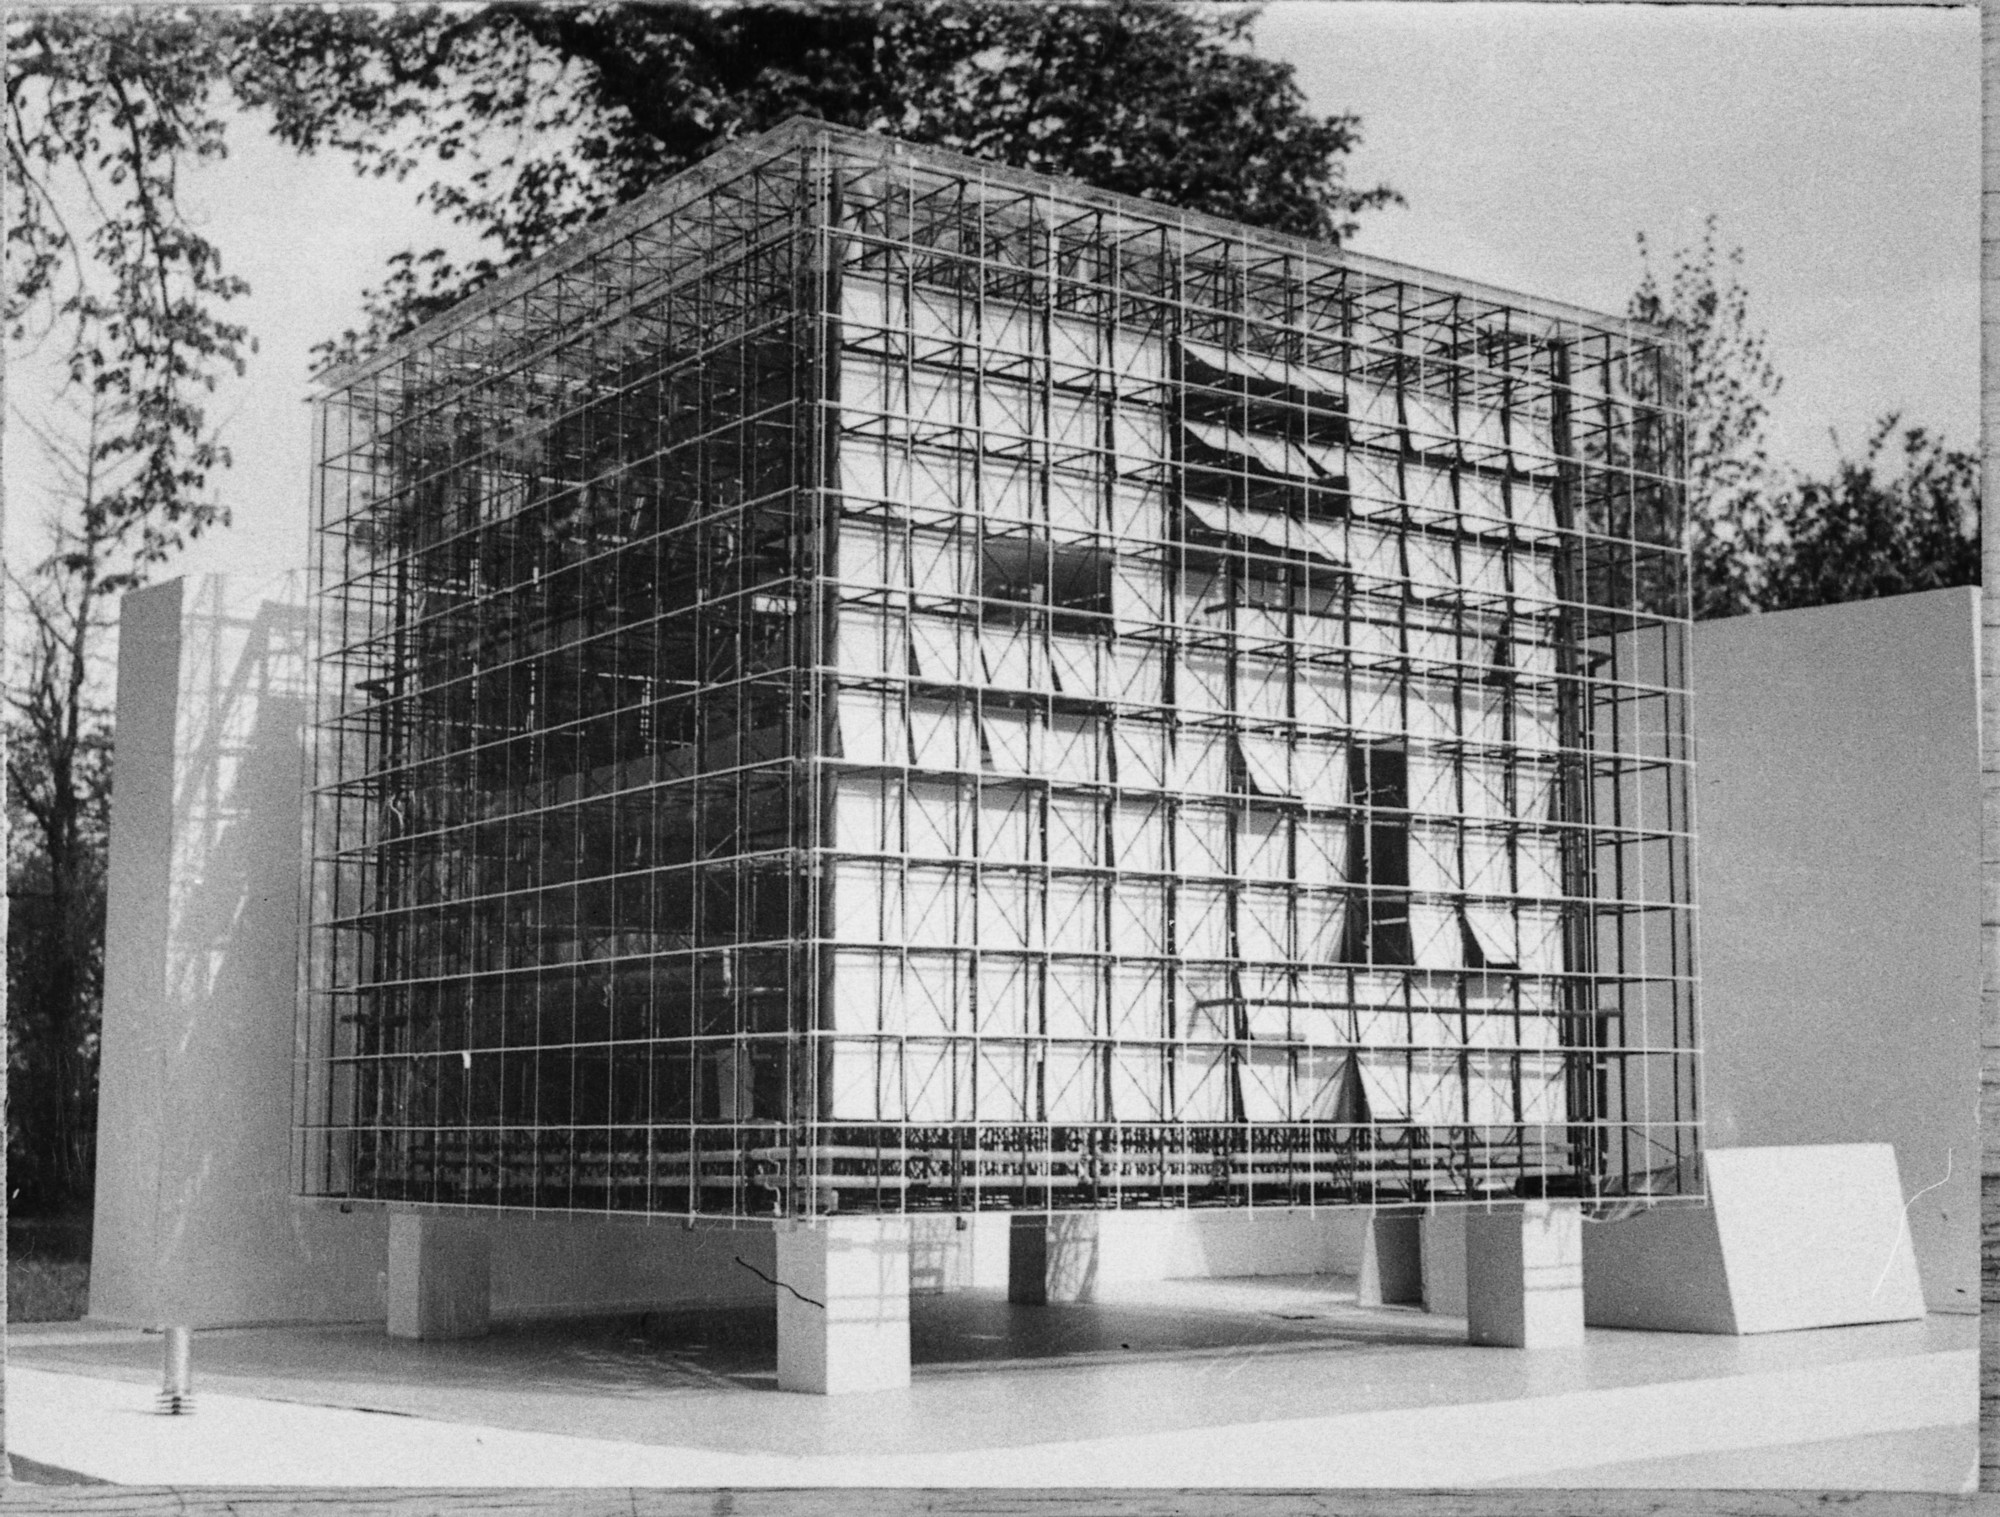 oskar hansen exhibition to open at yale school of architecture courtesy of stanisaw zamecznik archive - Modern Architecture Exhibition